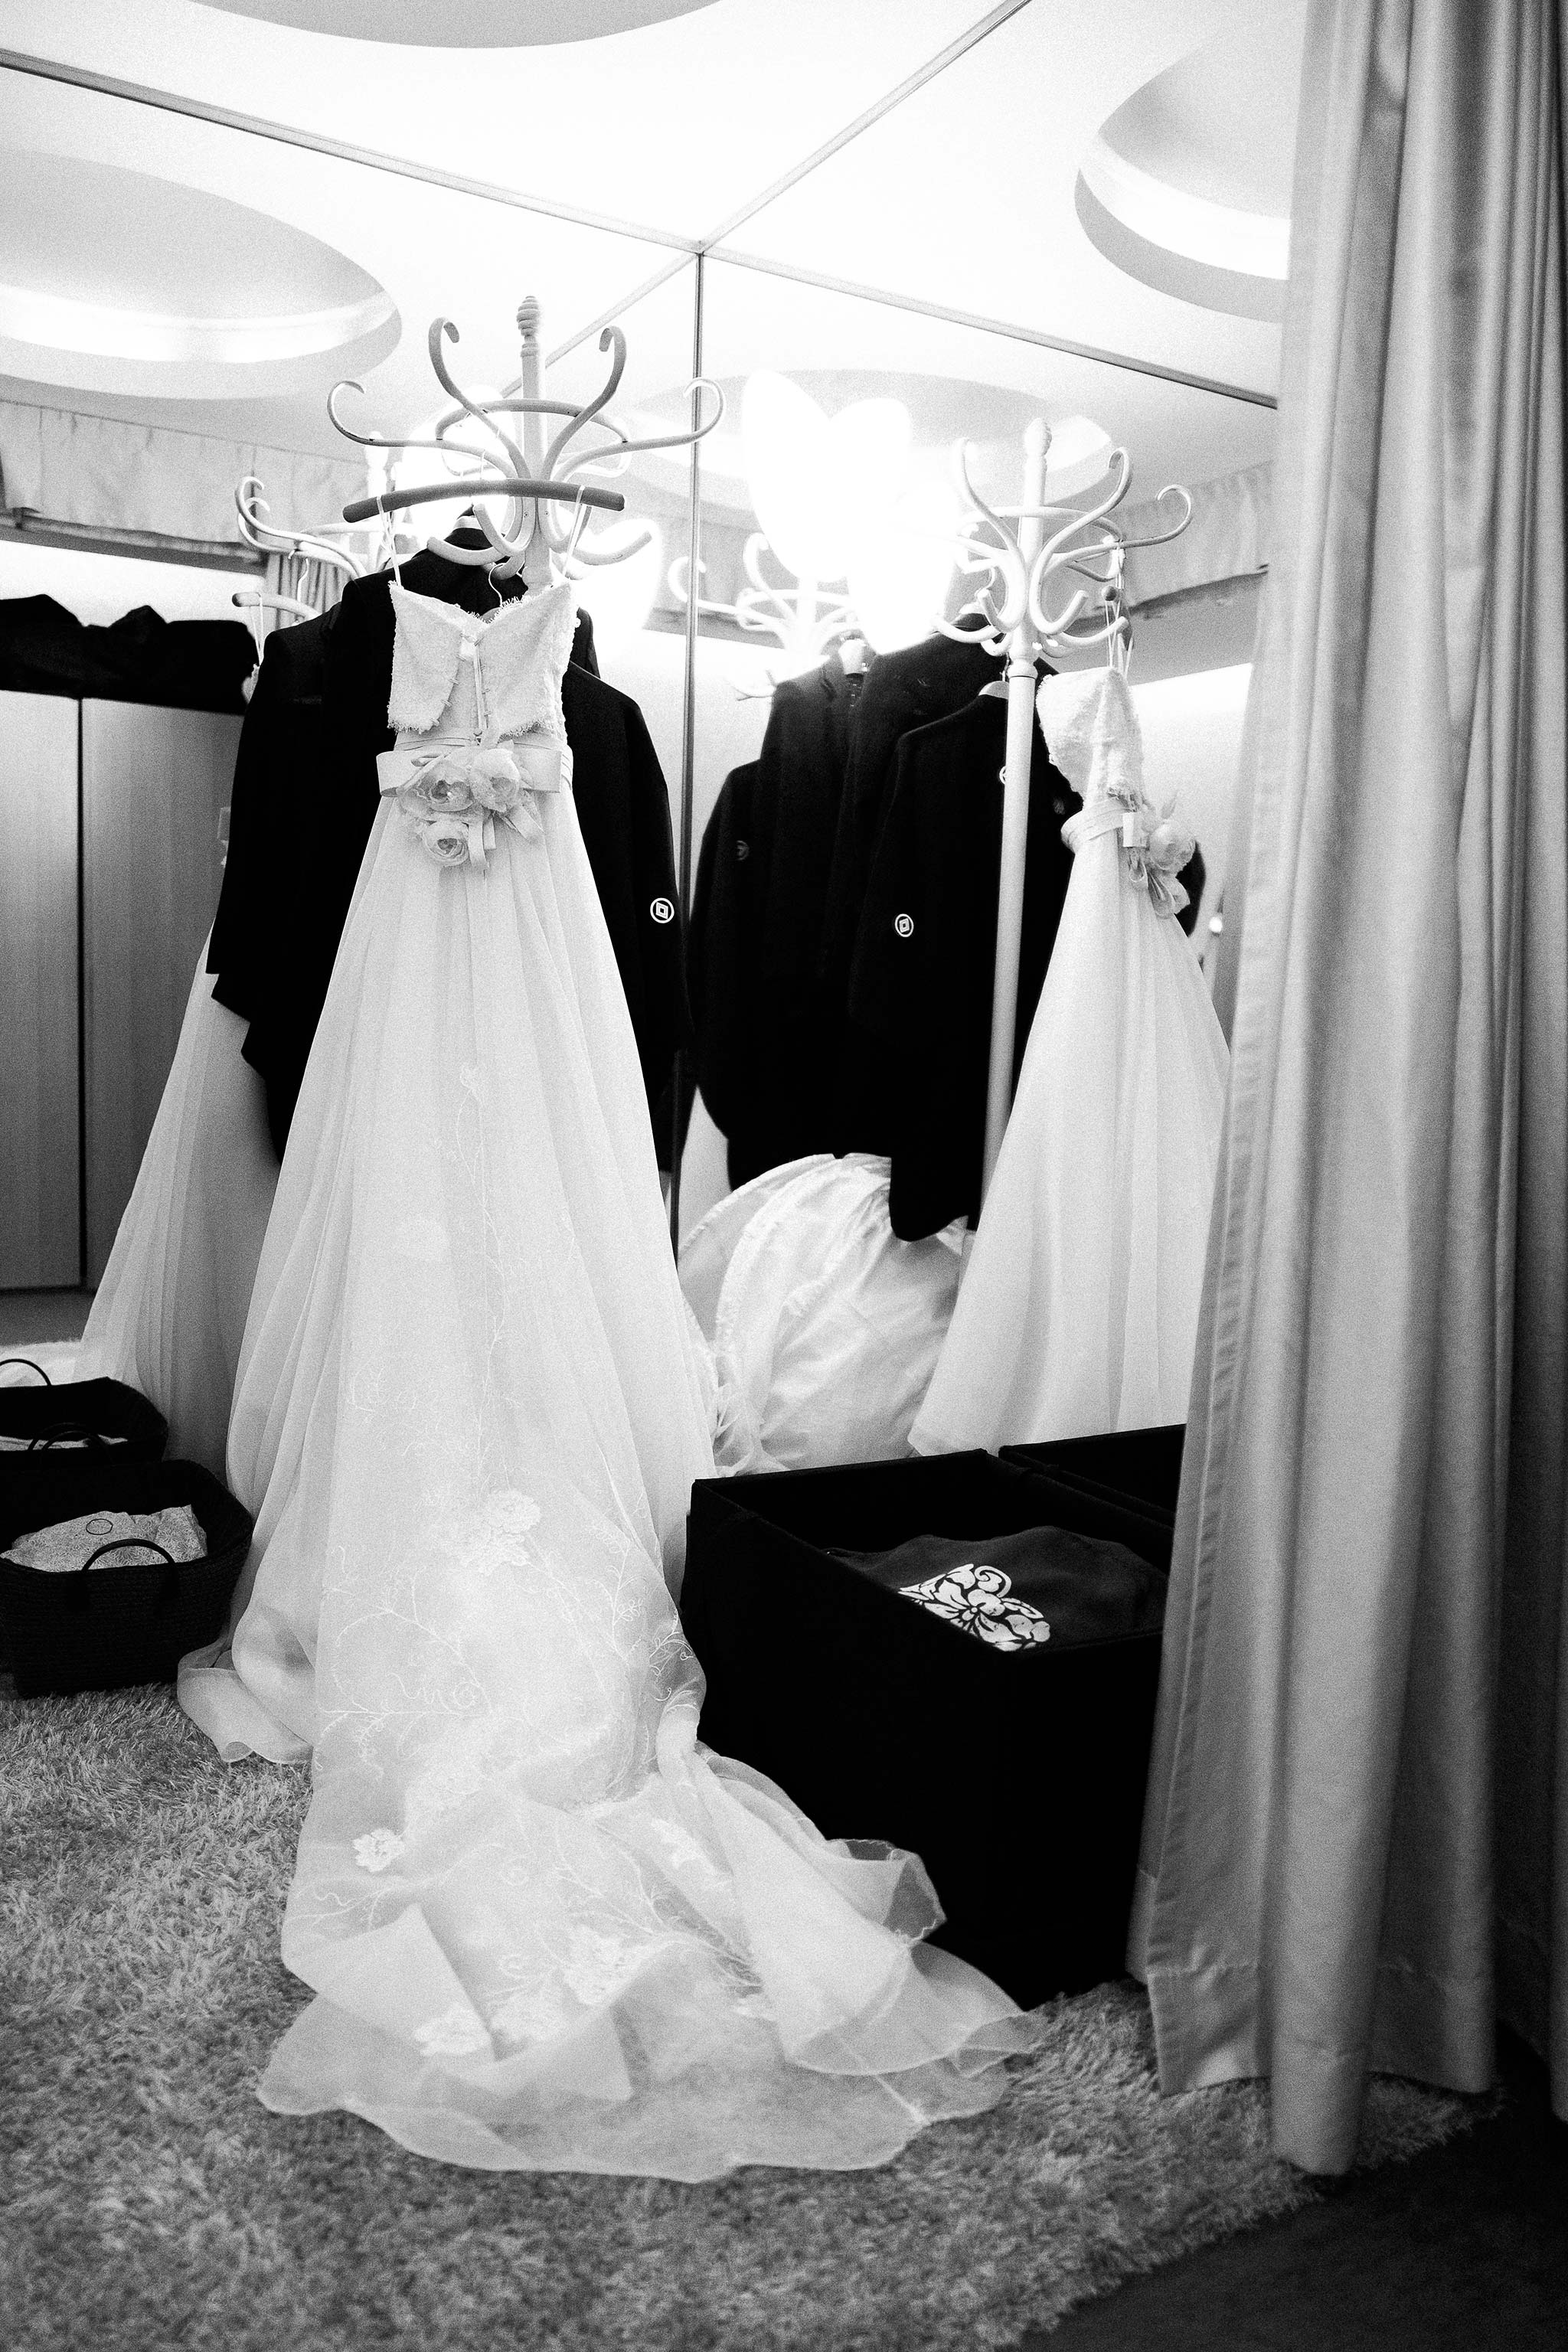 Osaka-Banpaku-Geihinkan-Wedding-getting-ready-wedding-dress